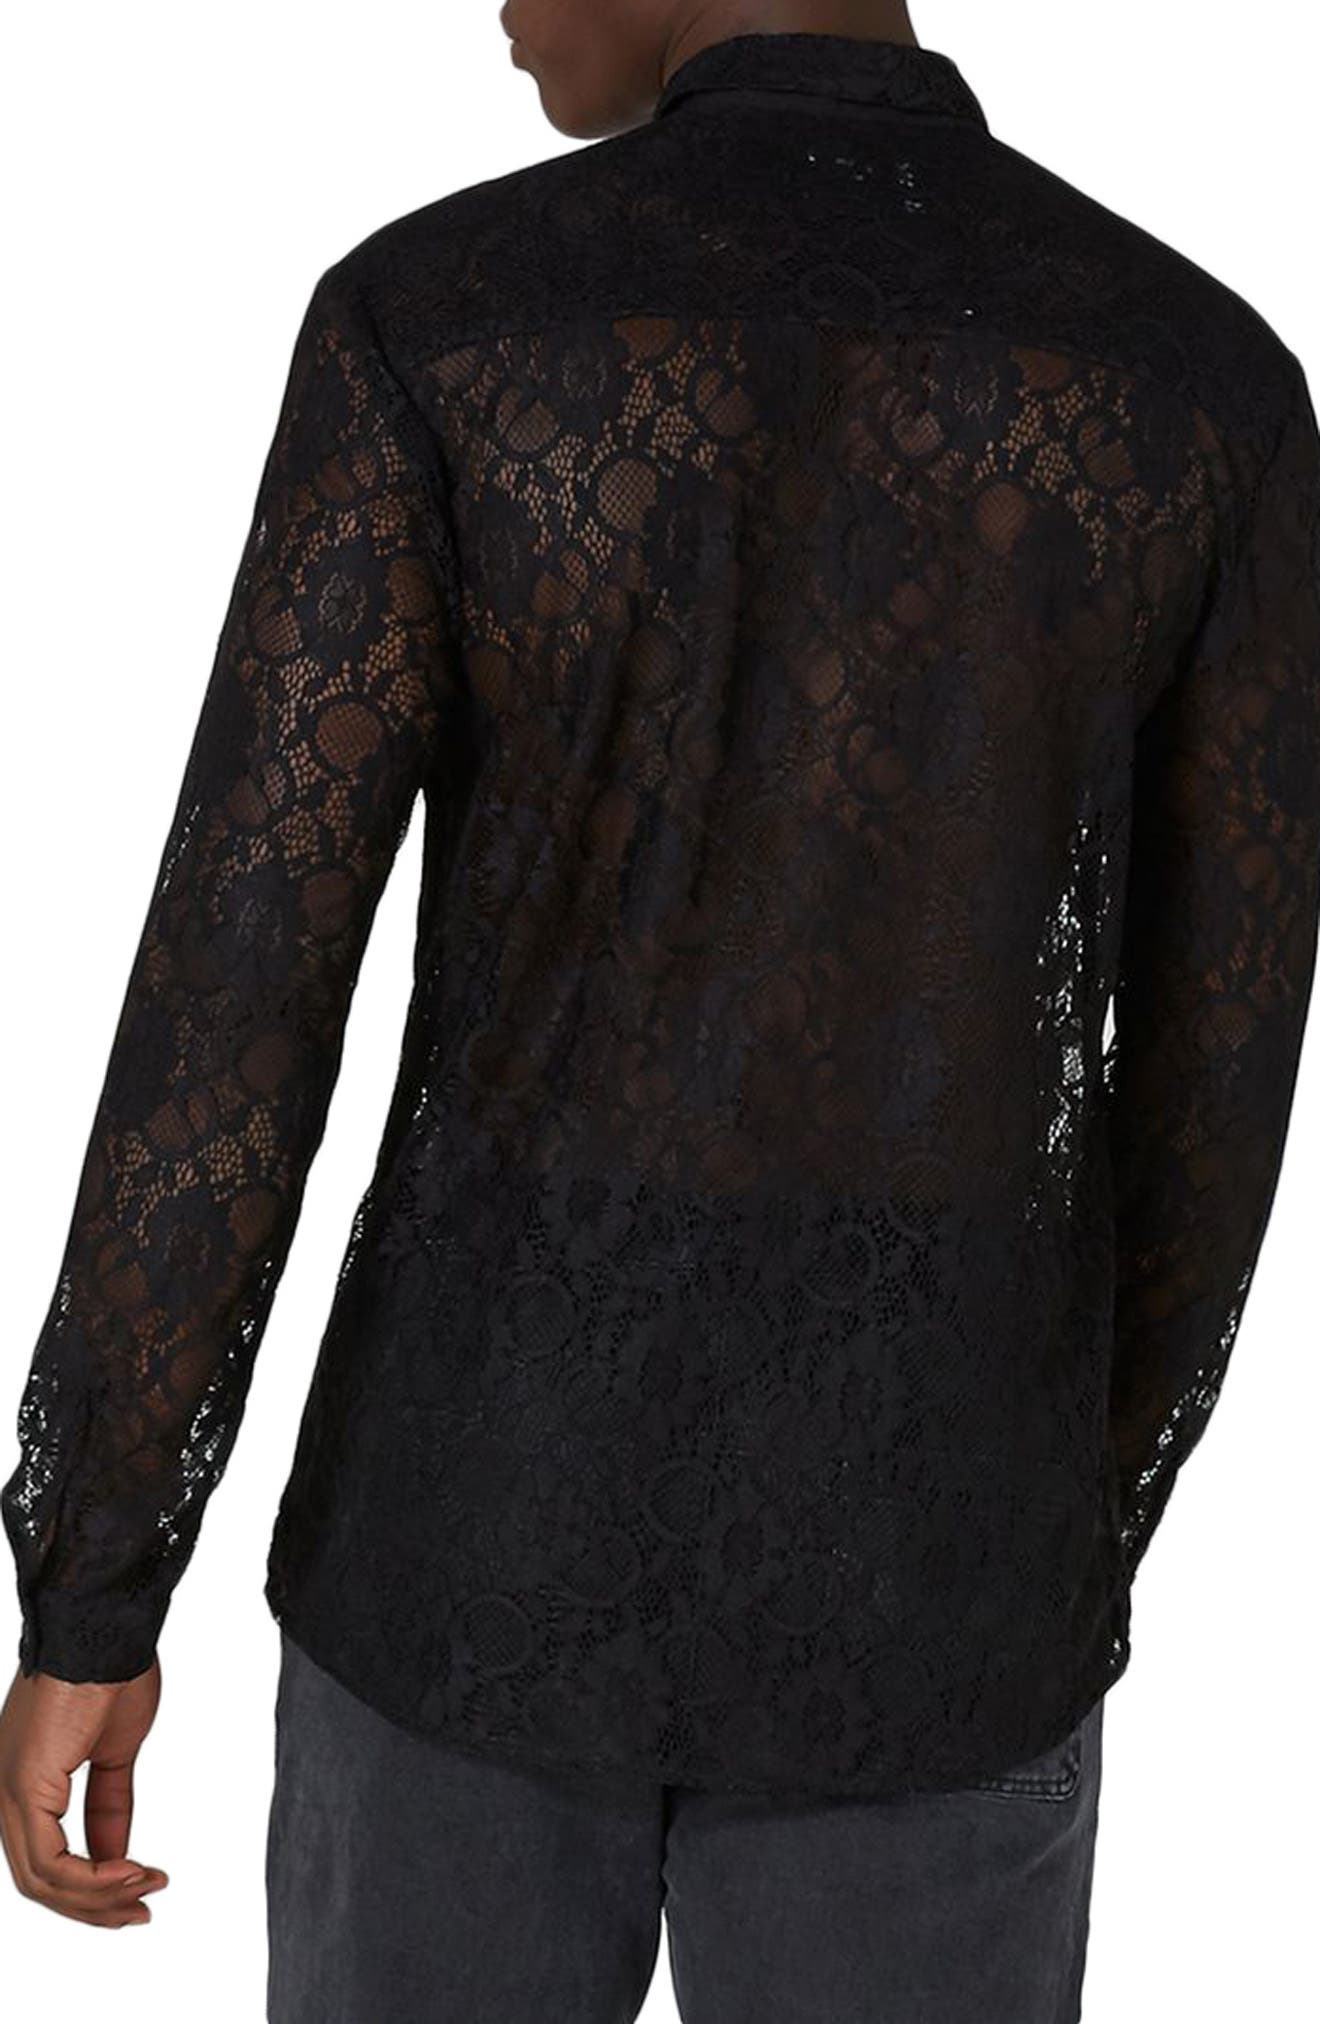 Muscle Fit Sheer Lace Shirt,                             Alternate thumbnail 2, color,                             001